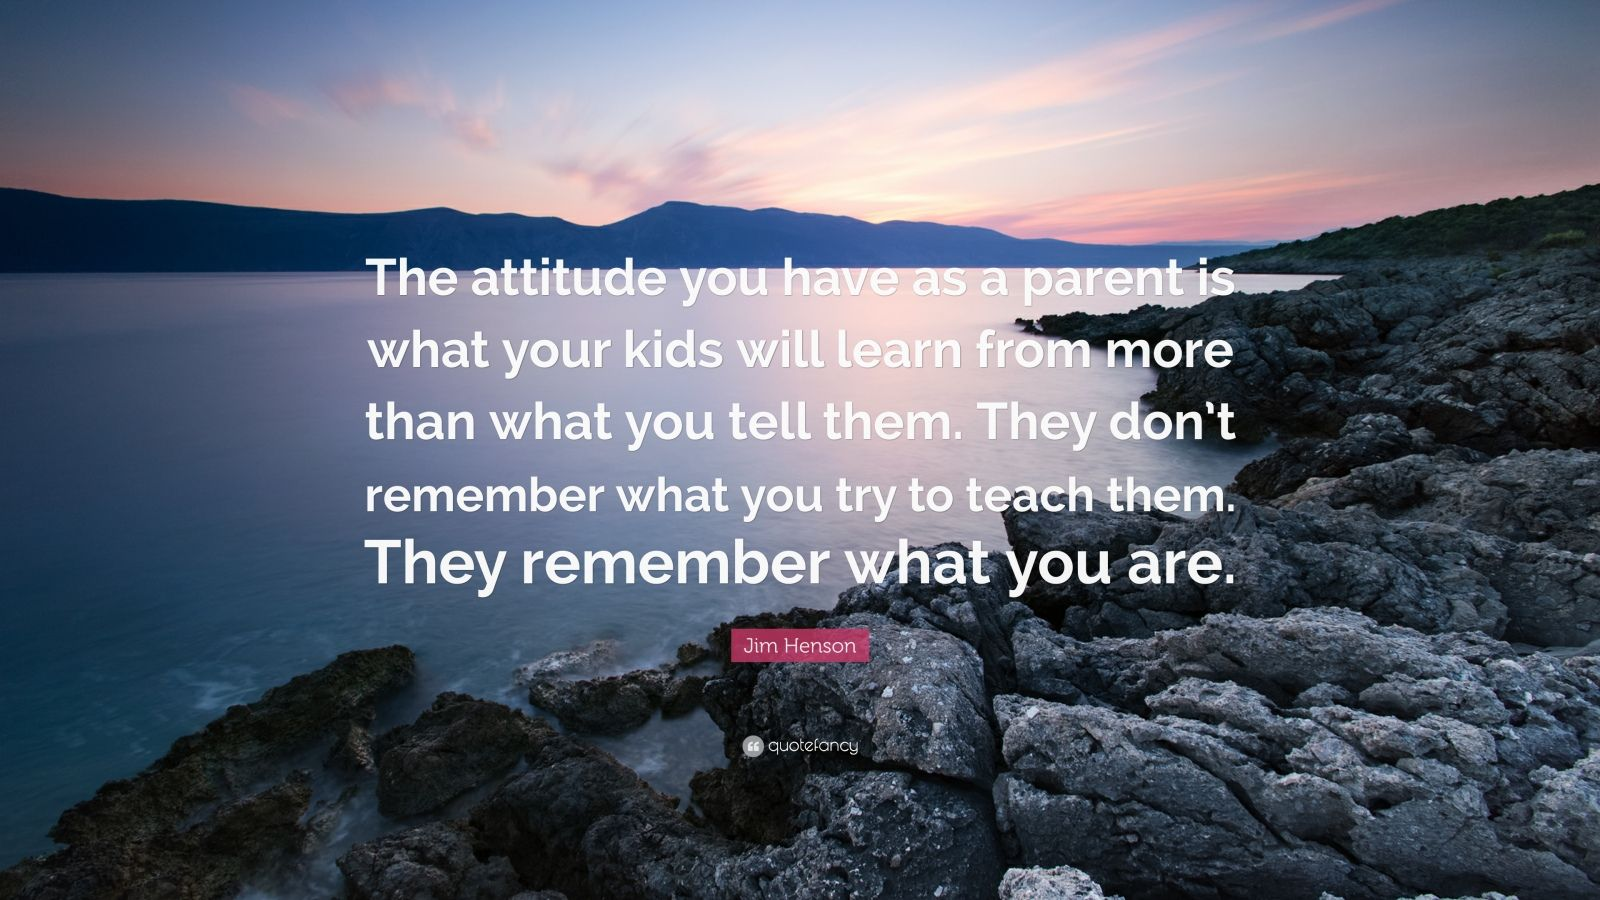 """Jim Henson Quote: """"The attitude you have as a parent is what your kids will learn from more than what you tell them. They don't remember what you try to teach them. They remember what you are."""""""